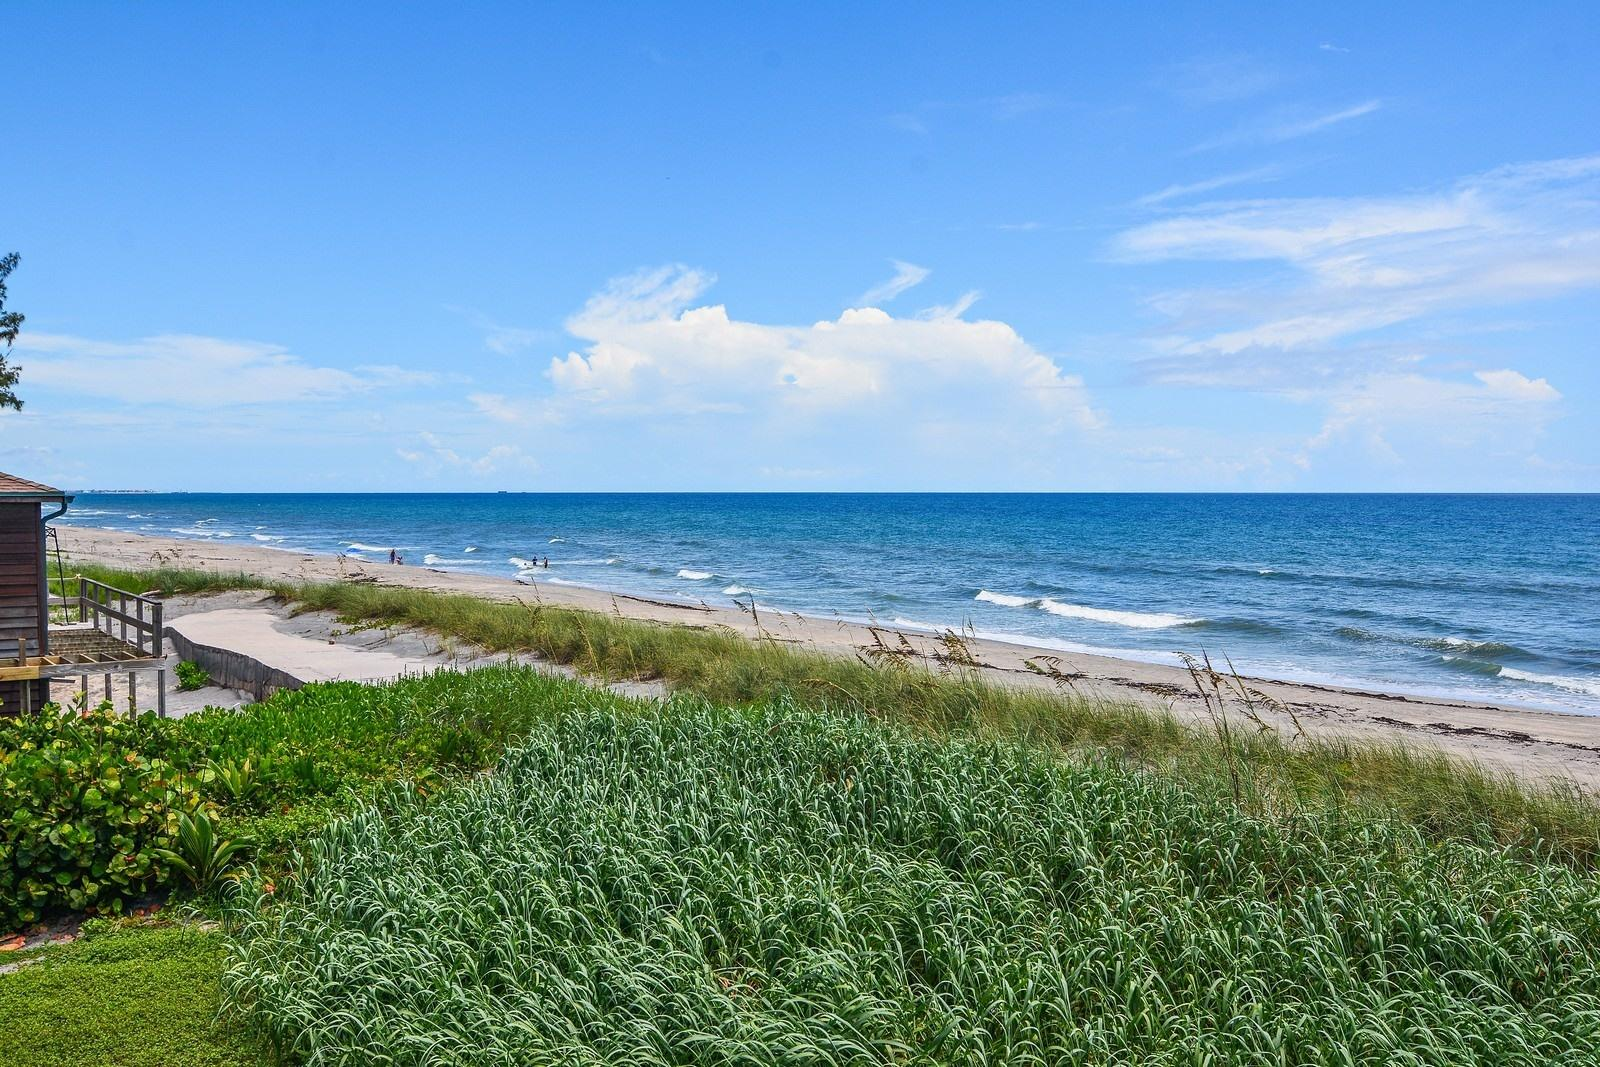 BON AIR BEACH HOBE SOUND FLORIDA